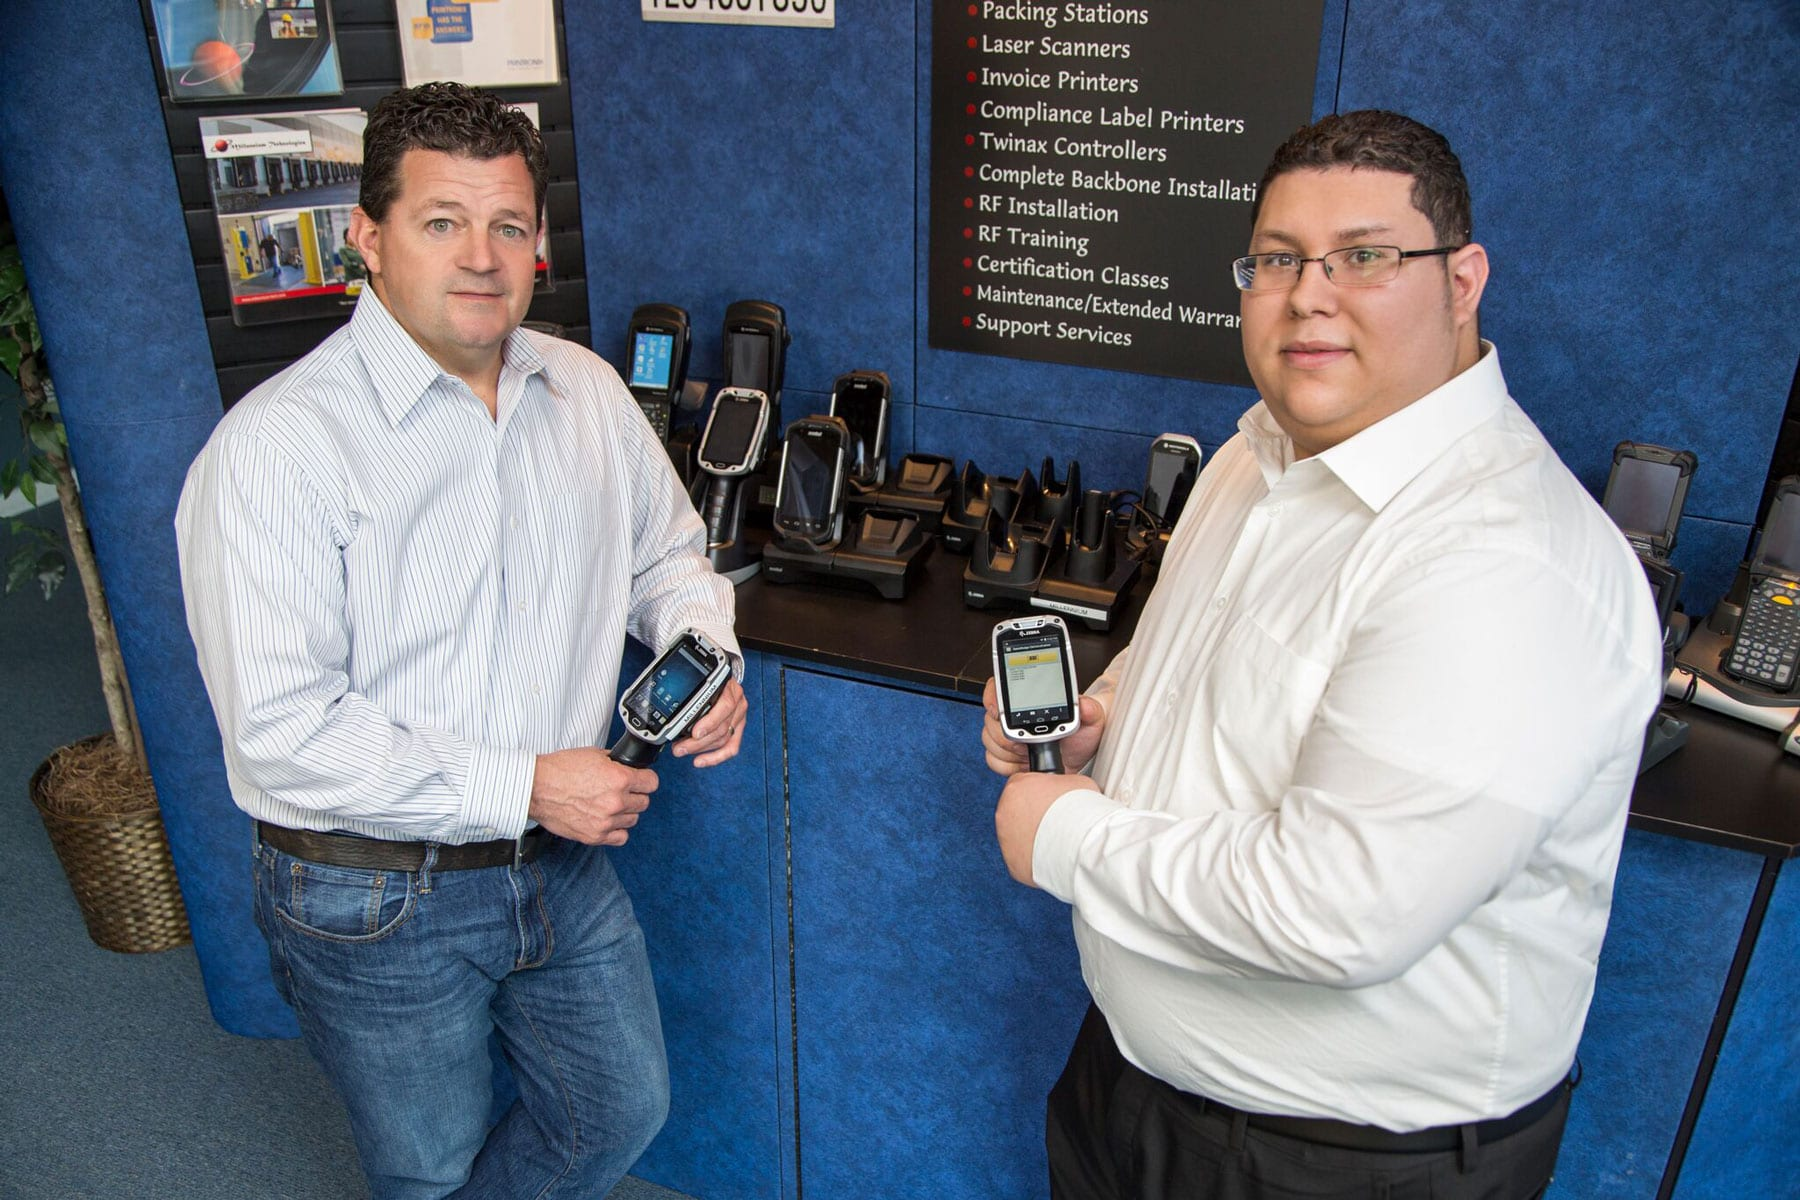 Millennium Technologies Employees Holding Scanners